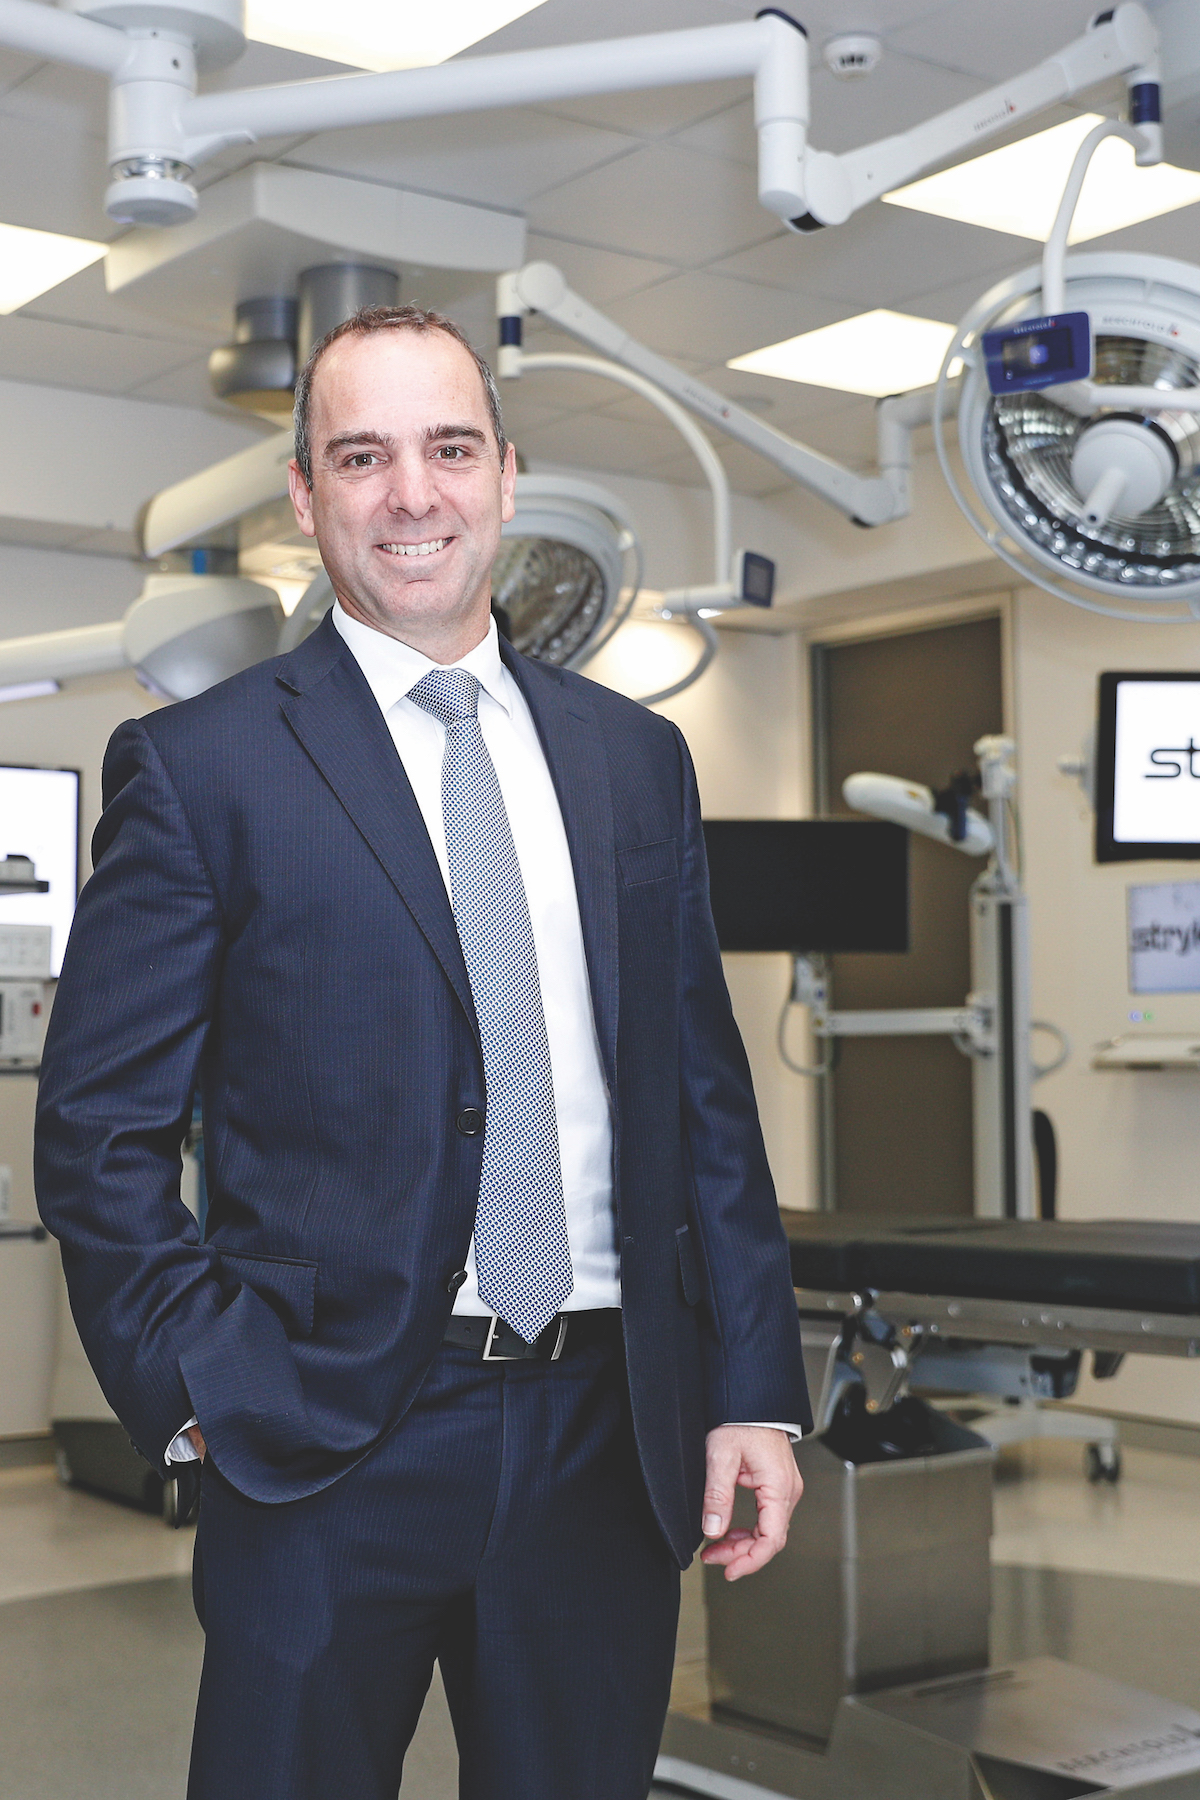 Maurice Ben-Mayor President of Stryker South Pacific